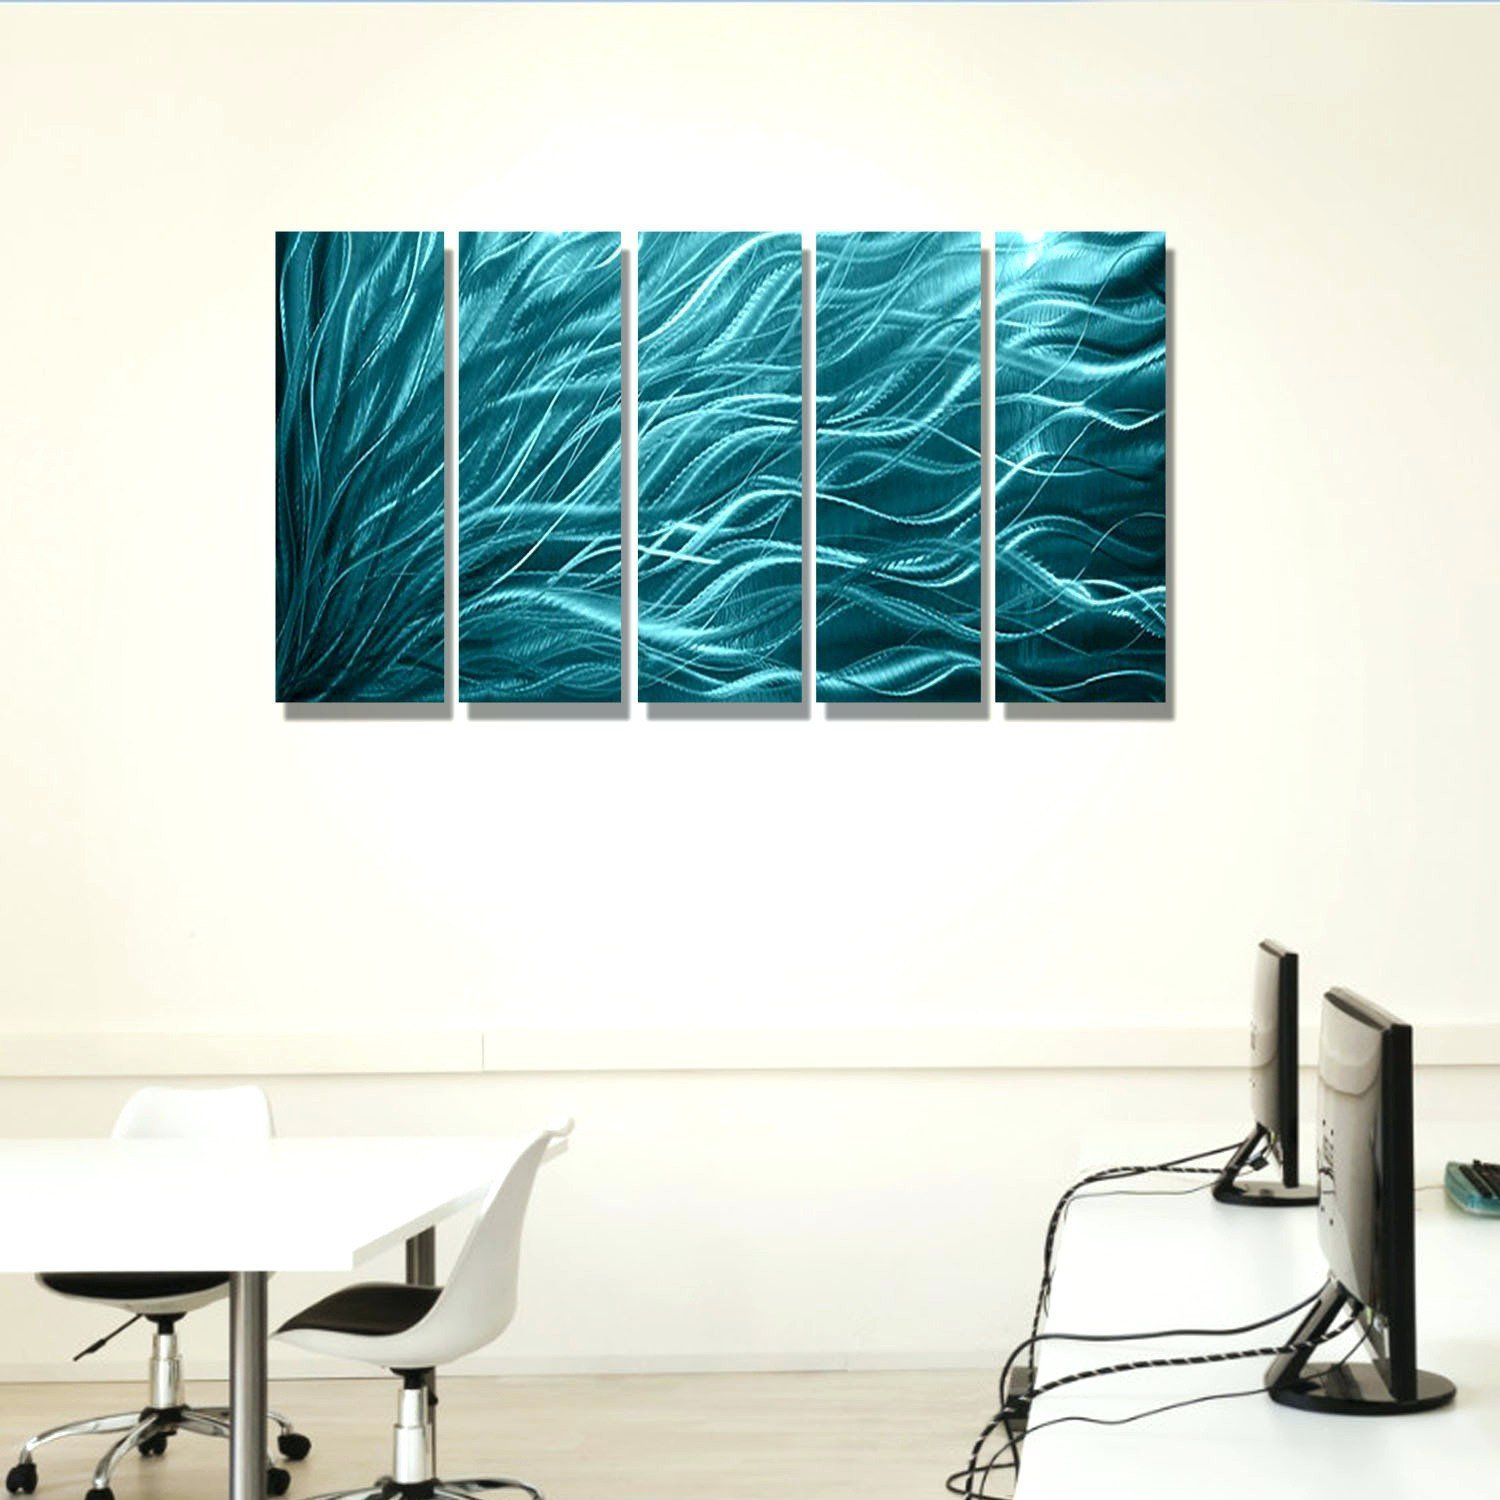 Coral and Teal Bedroom Inspirational 22 Teal Floral Wall Art Kunuzmetals